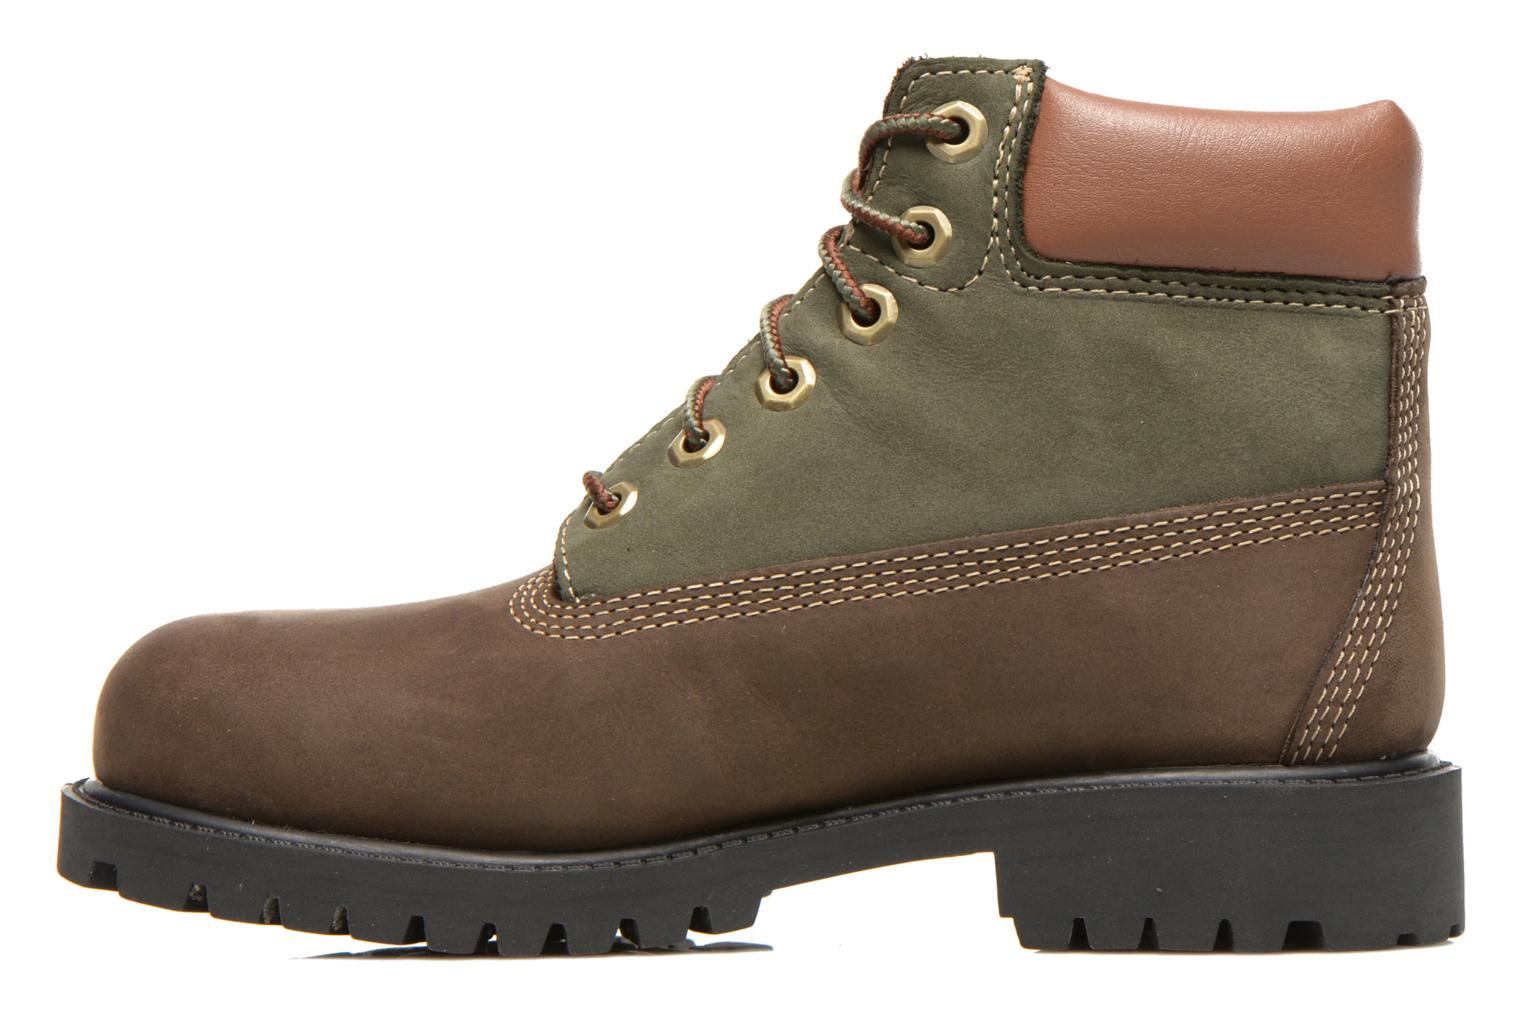 Bottines et boots Timberland 6 In Premium WP Boot Marron vue face